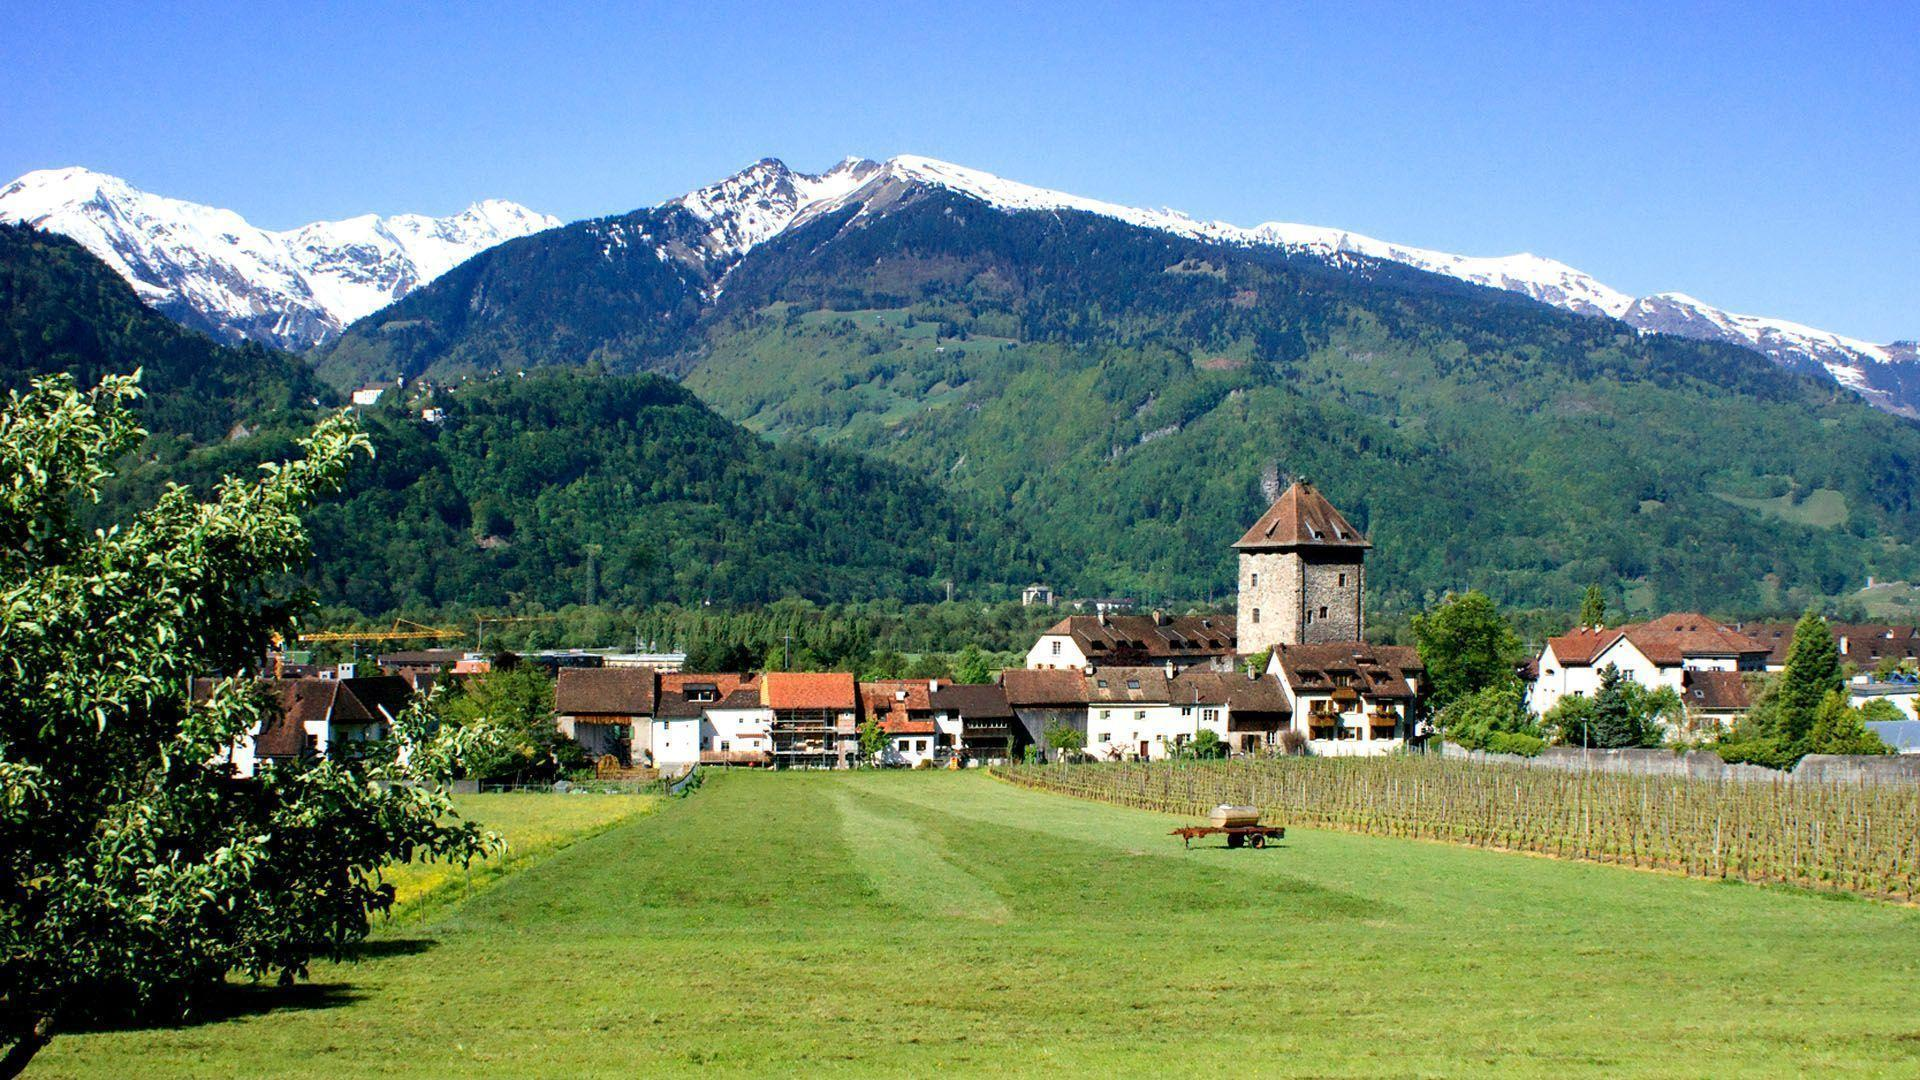 Swiss Alps Village wallpaper - 759376